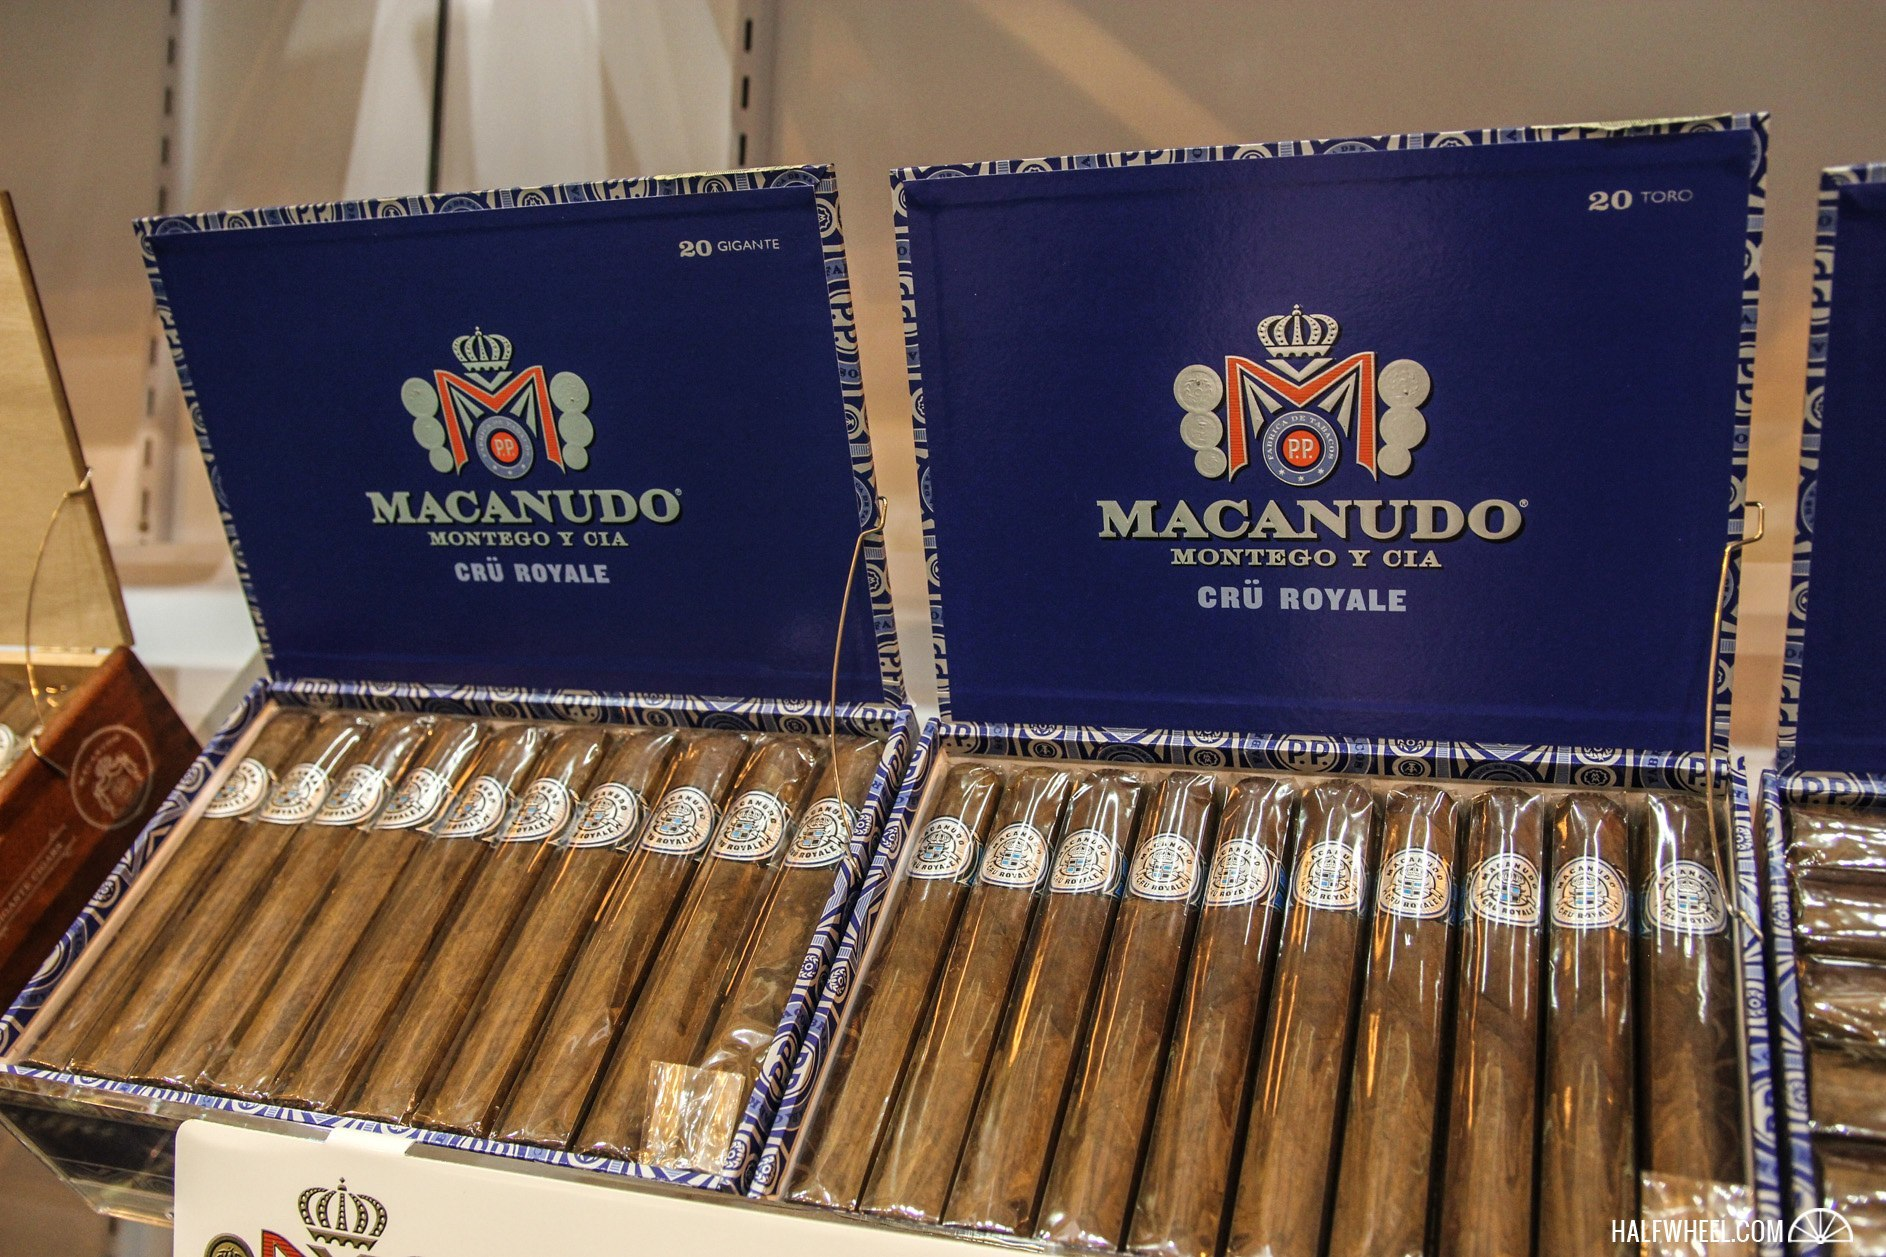 General Cigars Macanudo Cru Royale rebrand